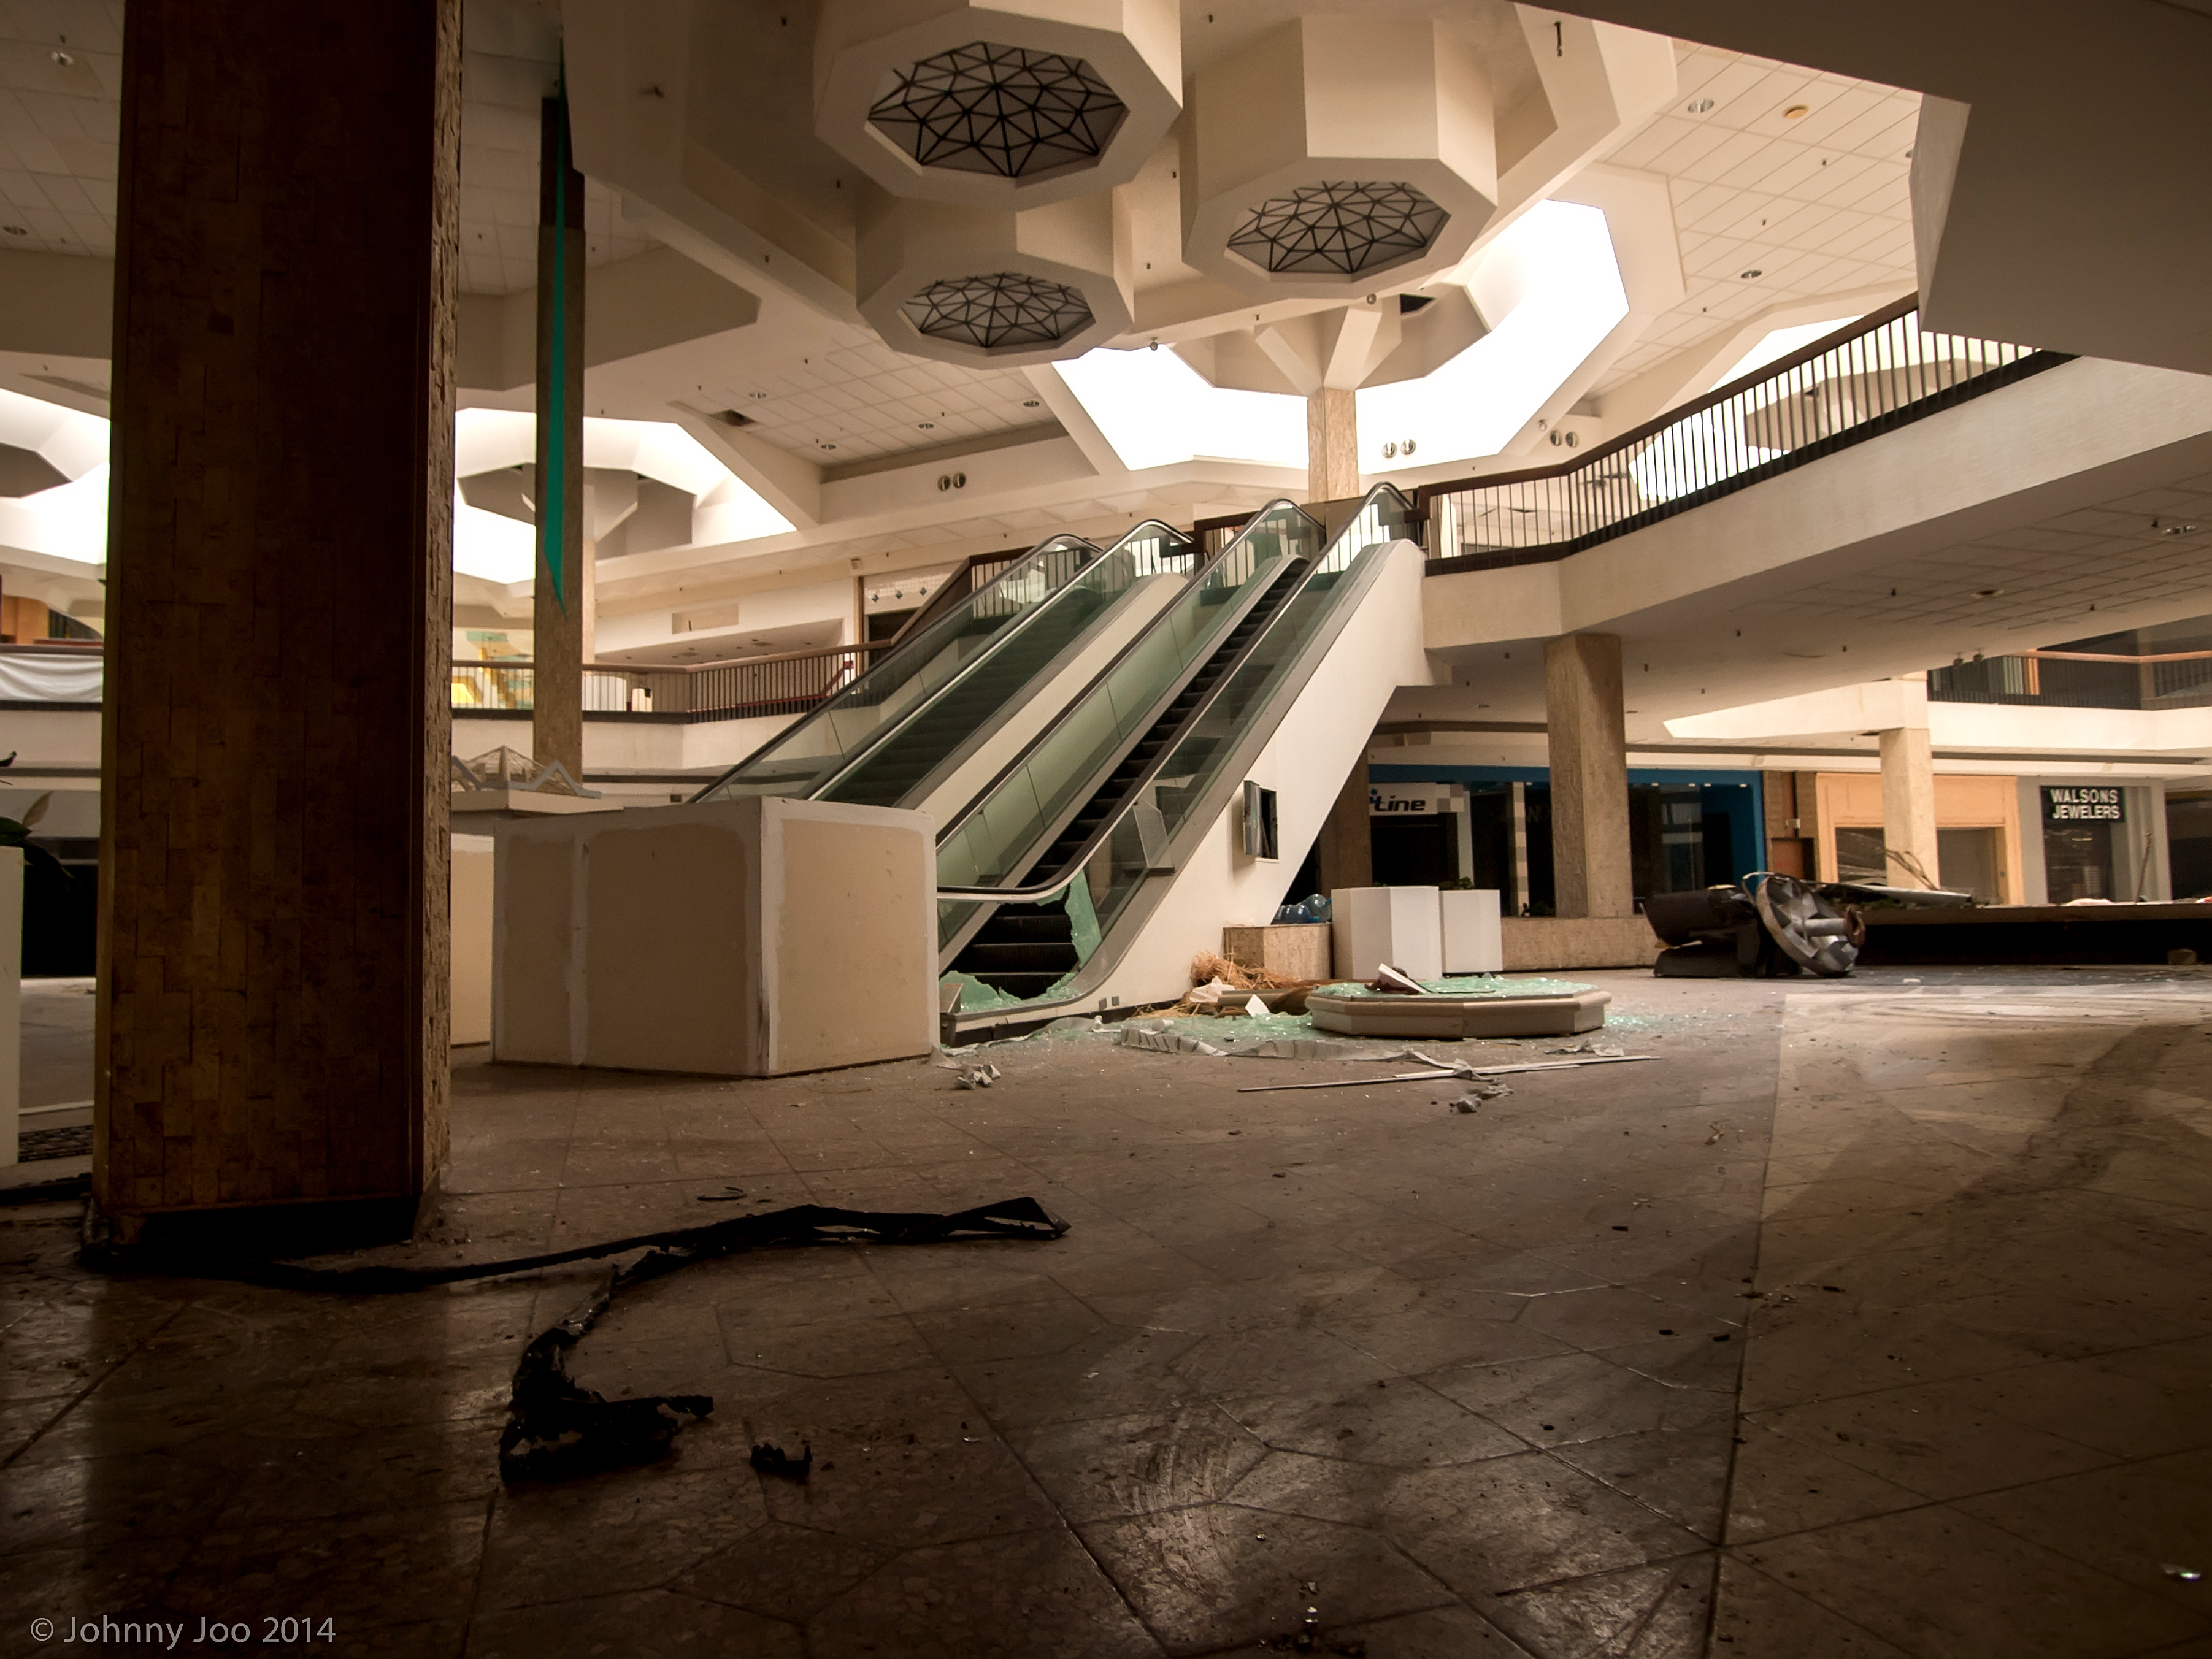 The Very Loud Silence Of An Abandoned Mall Architectural